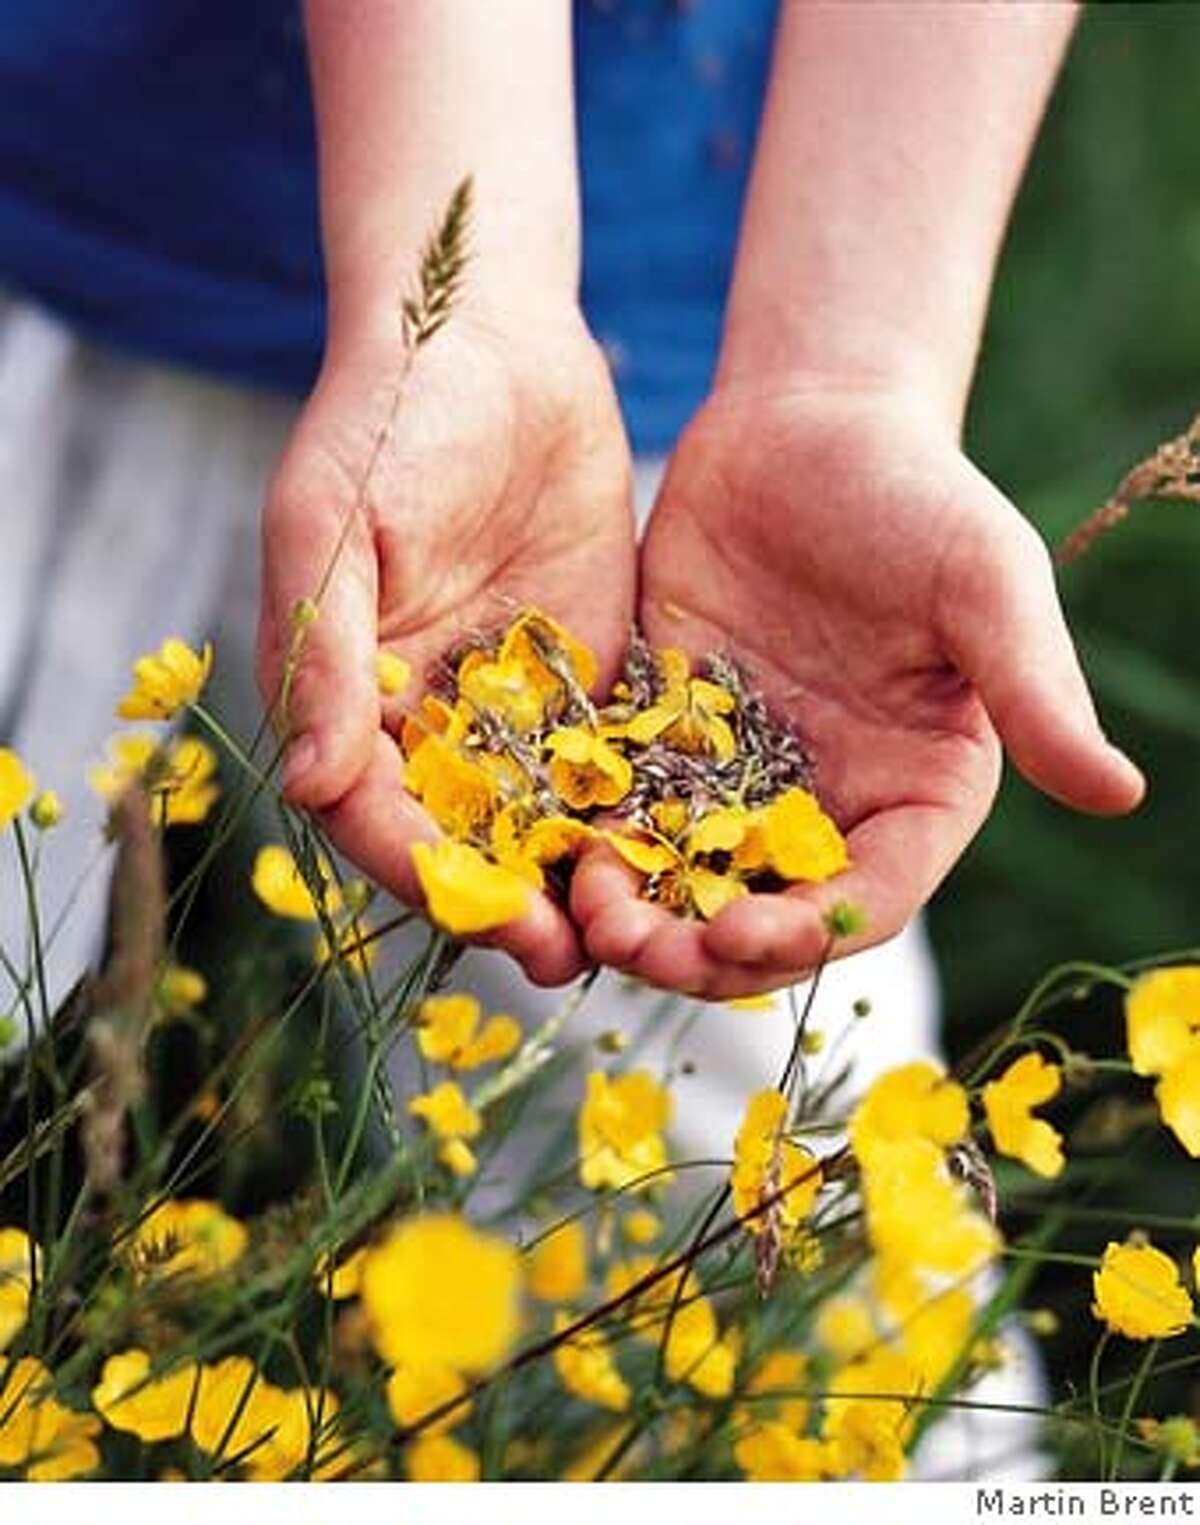 TRAVEL GARDENS -- Child's hands with buttercups at RHS Wisley Gardens, Surrey. Ran on: 07-25-2004 A child inspects buttercups at the Royal Horticultural Societys Wisley Garden.